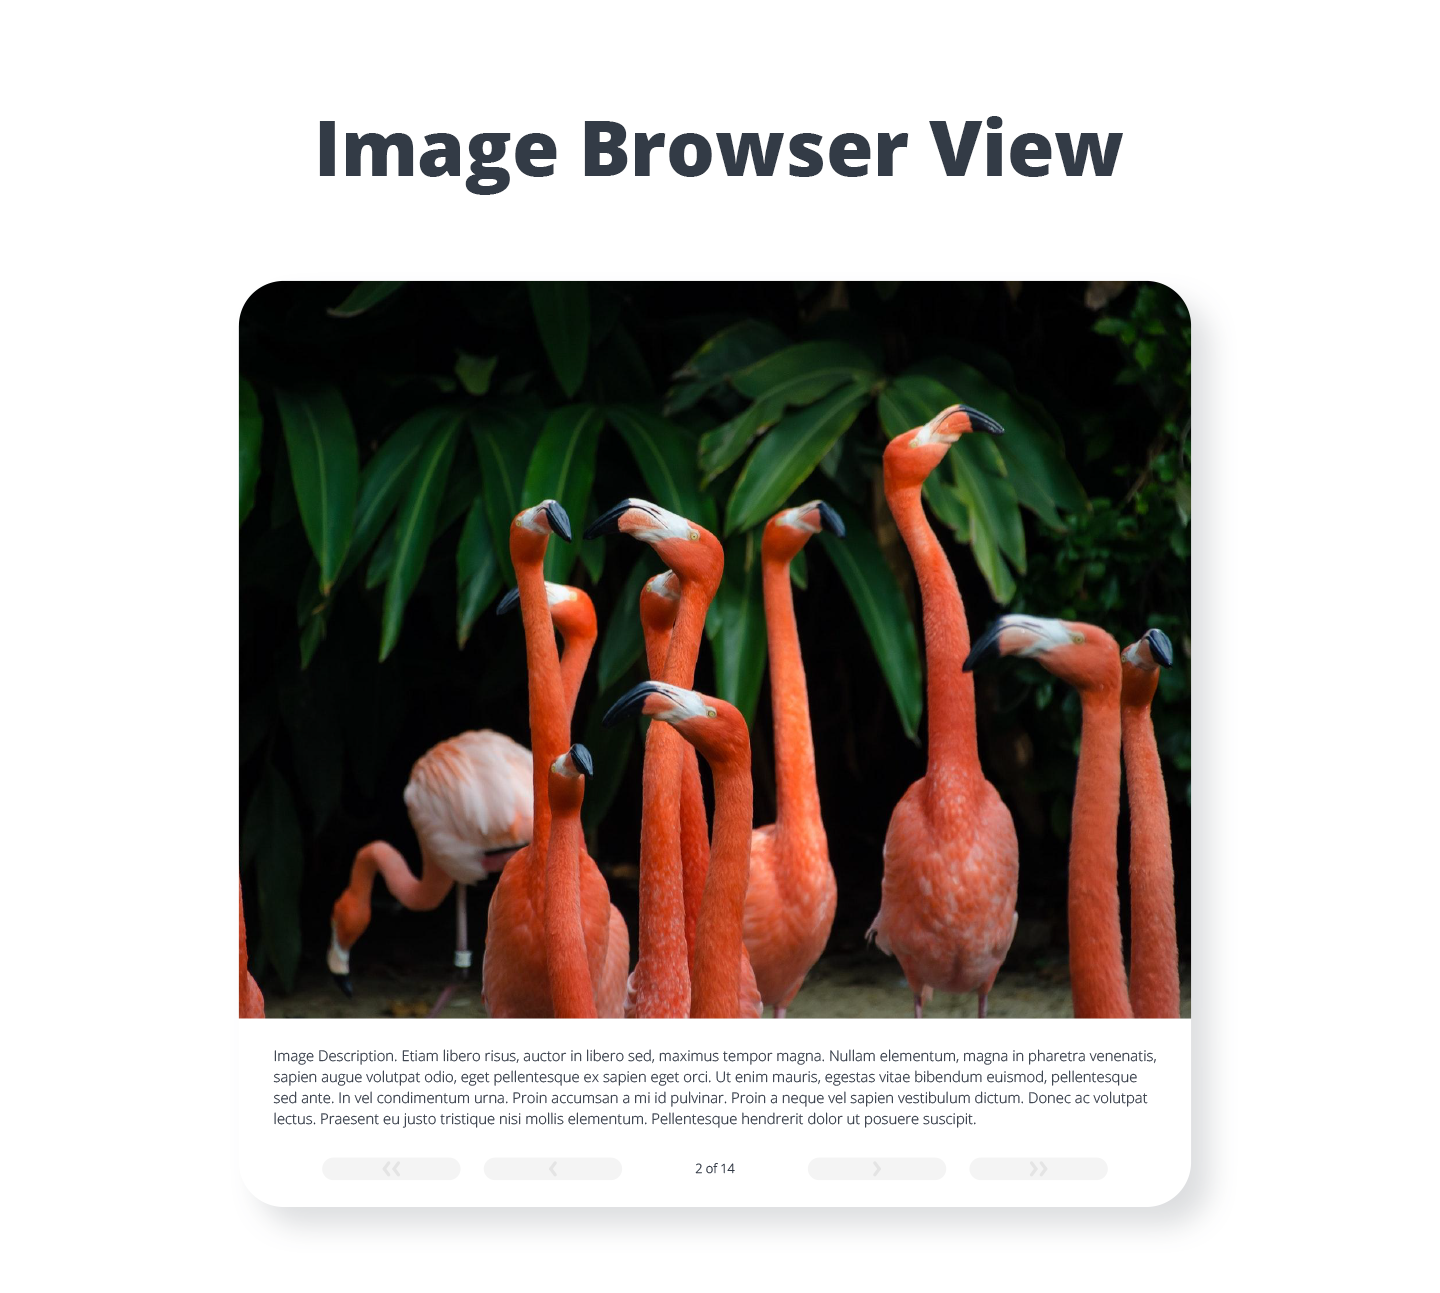 Photo Gallery - Image Browser View